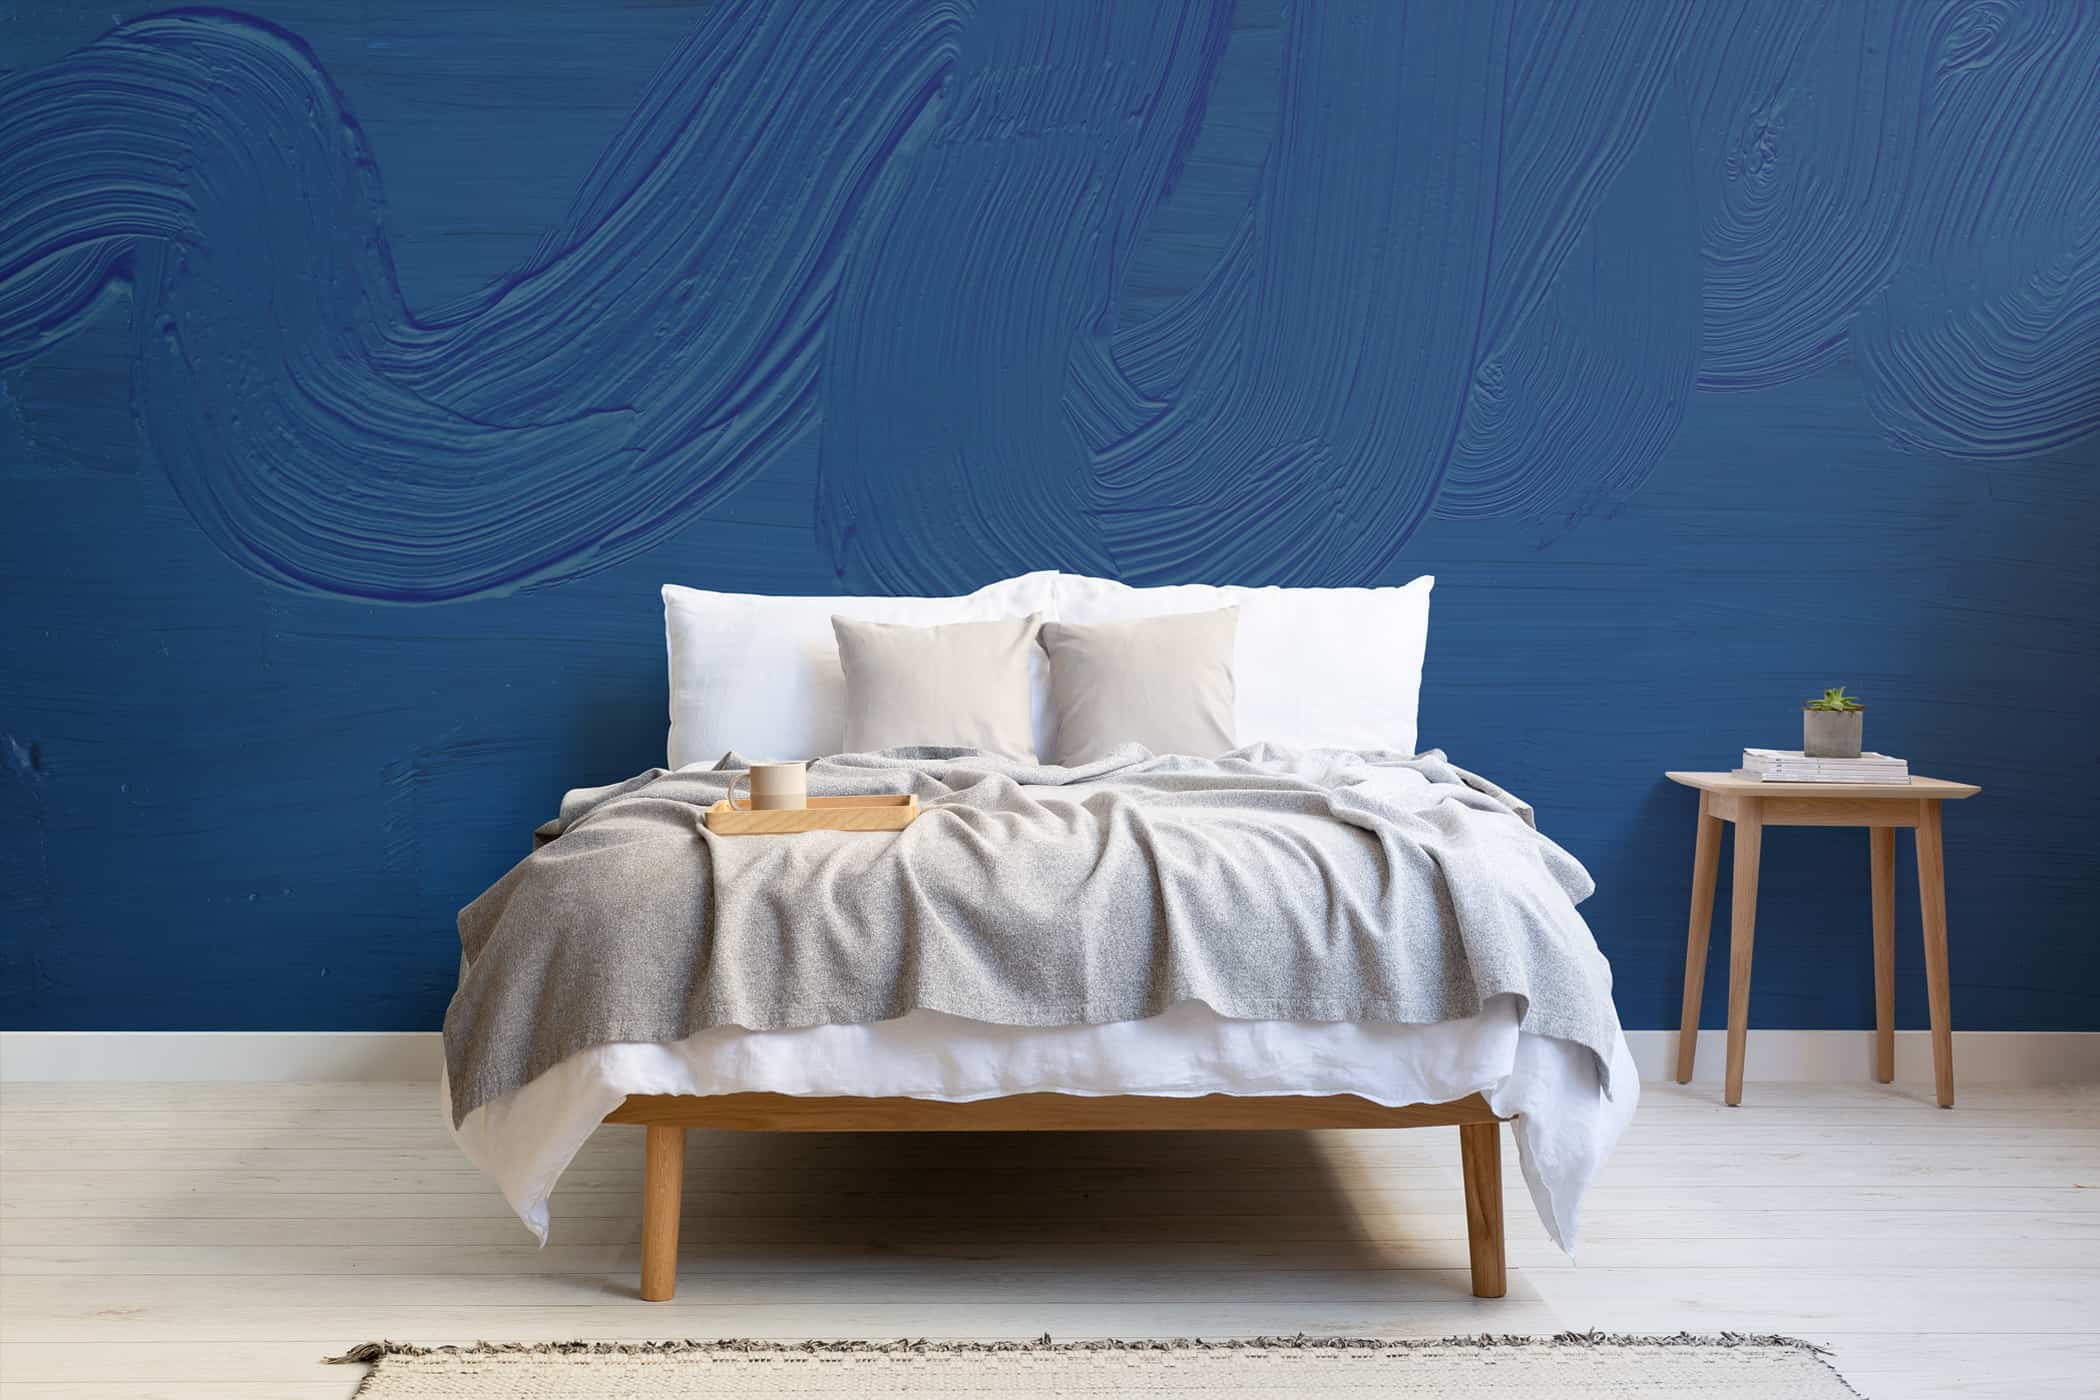 Dusk Classic Blue mural Lifestyle